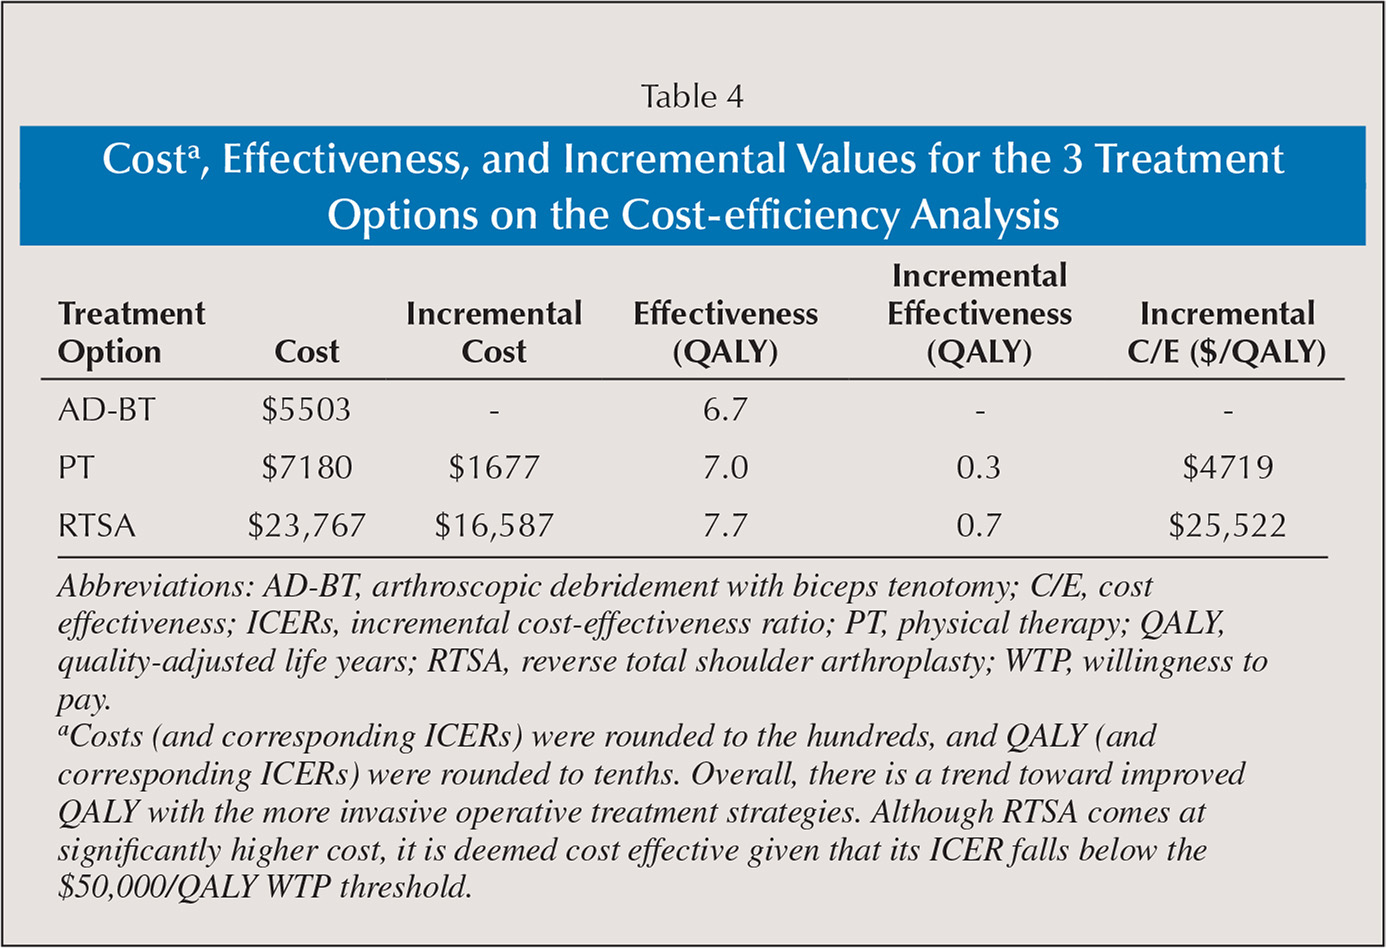 Costa, Effectiveness, and Incremental Values for the 3 Treatment Options on the Cost-efficiency Analysis